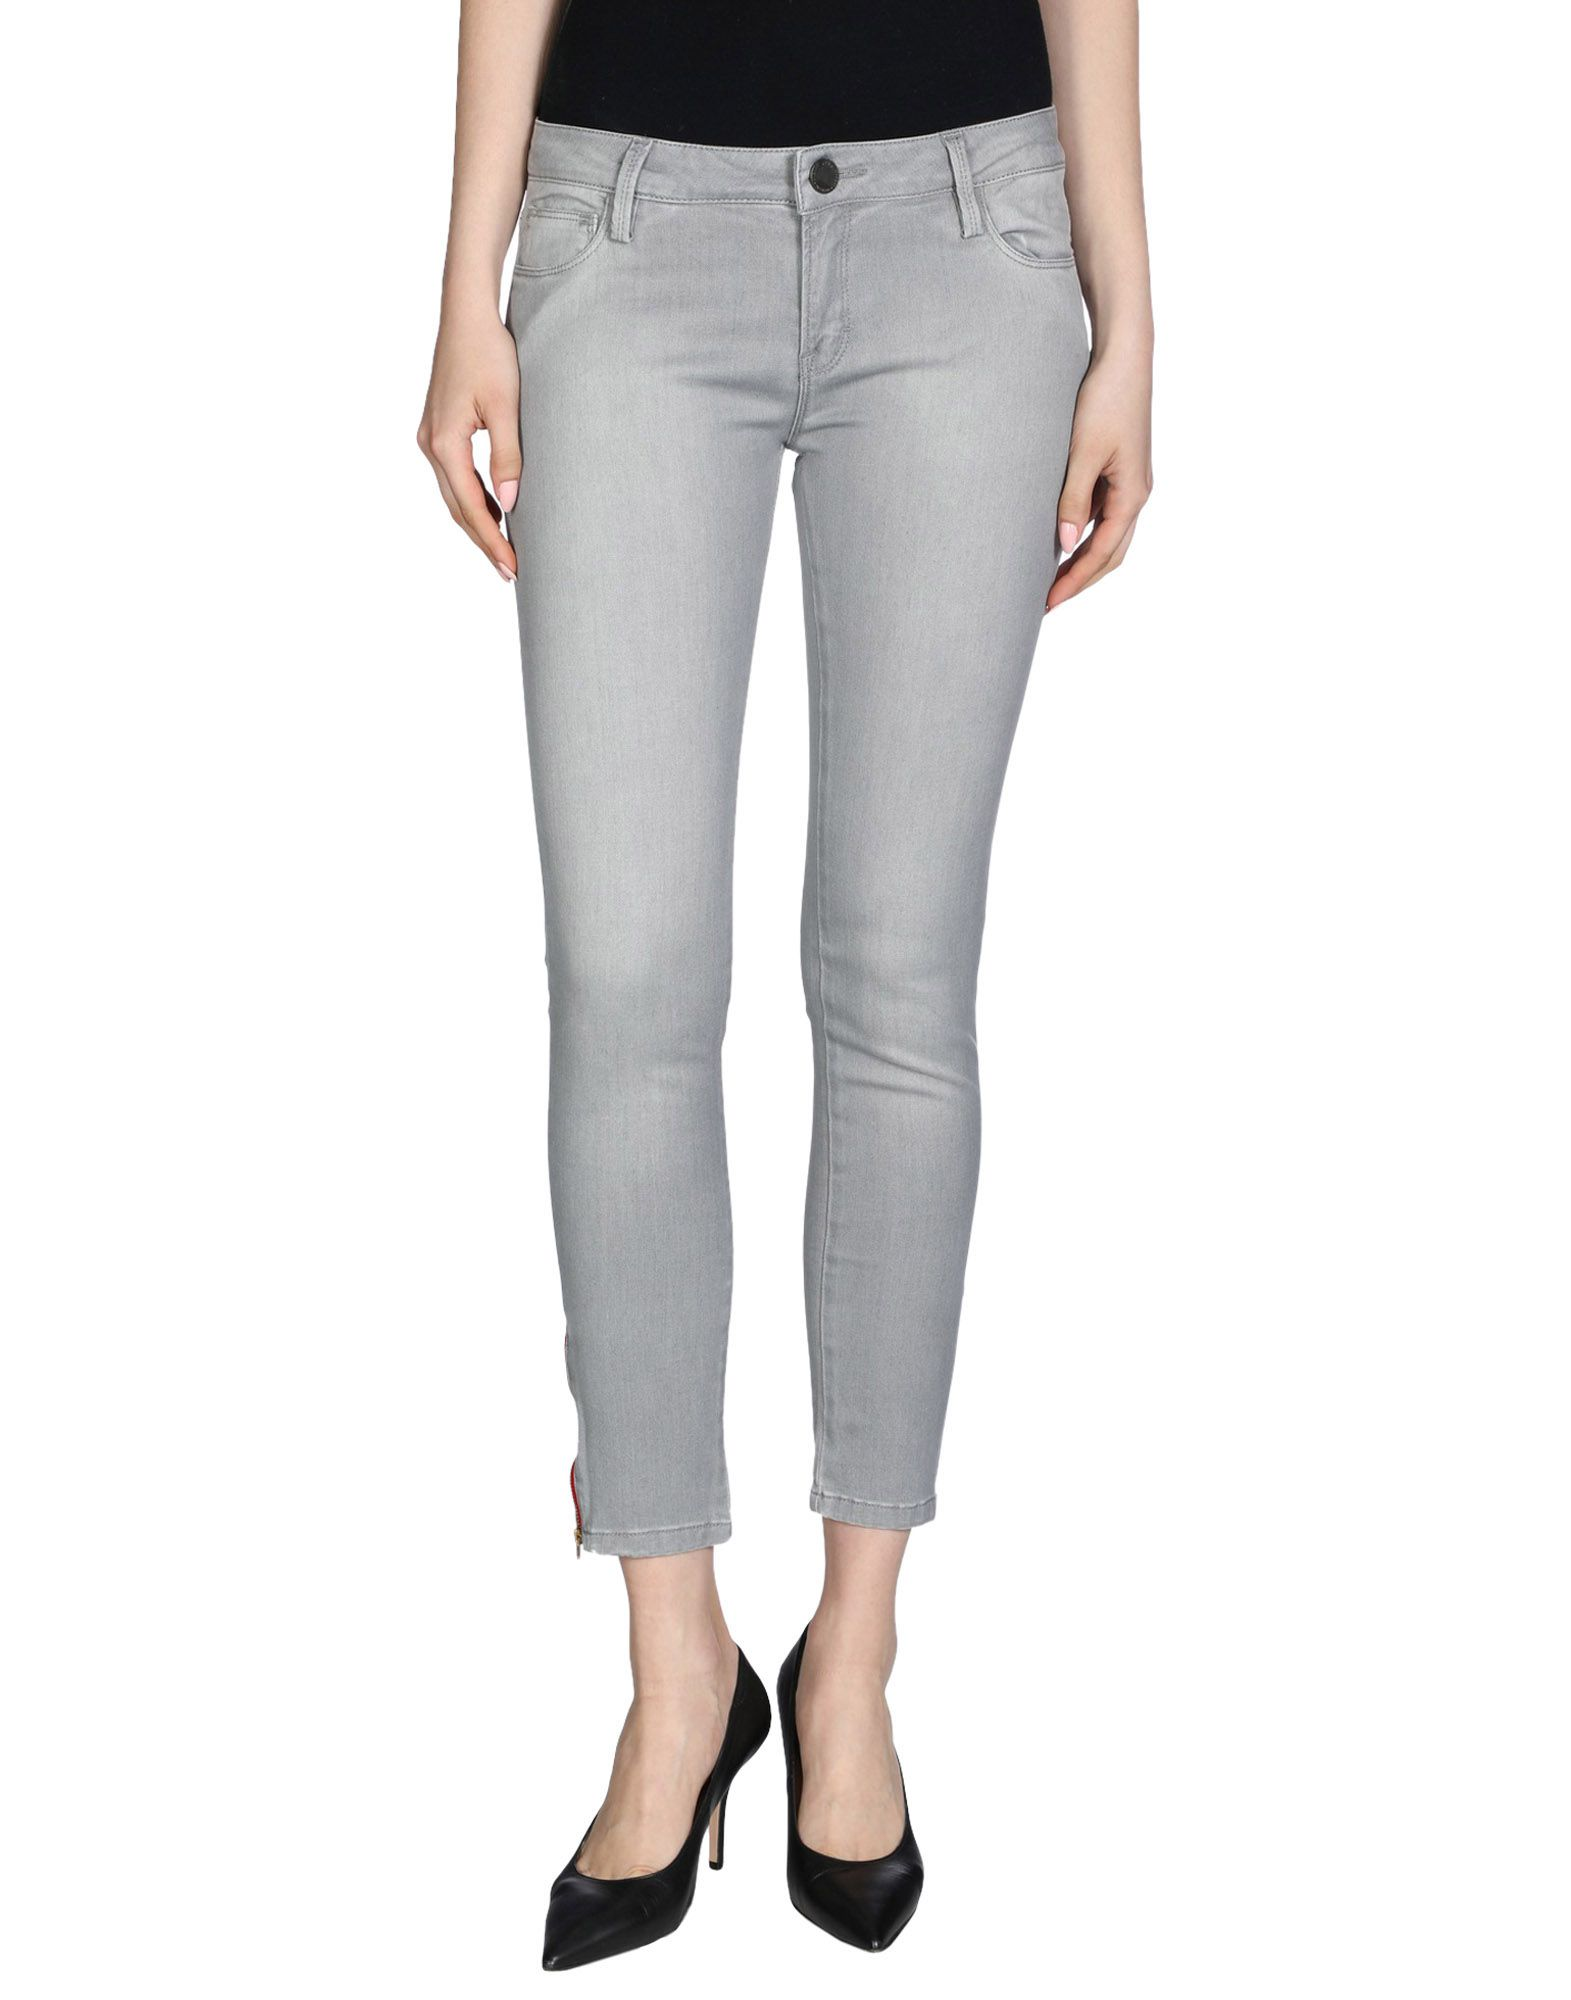 ETIENNE MARCEL Jeans in Light Grey